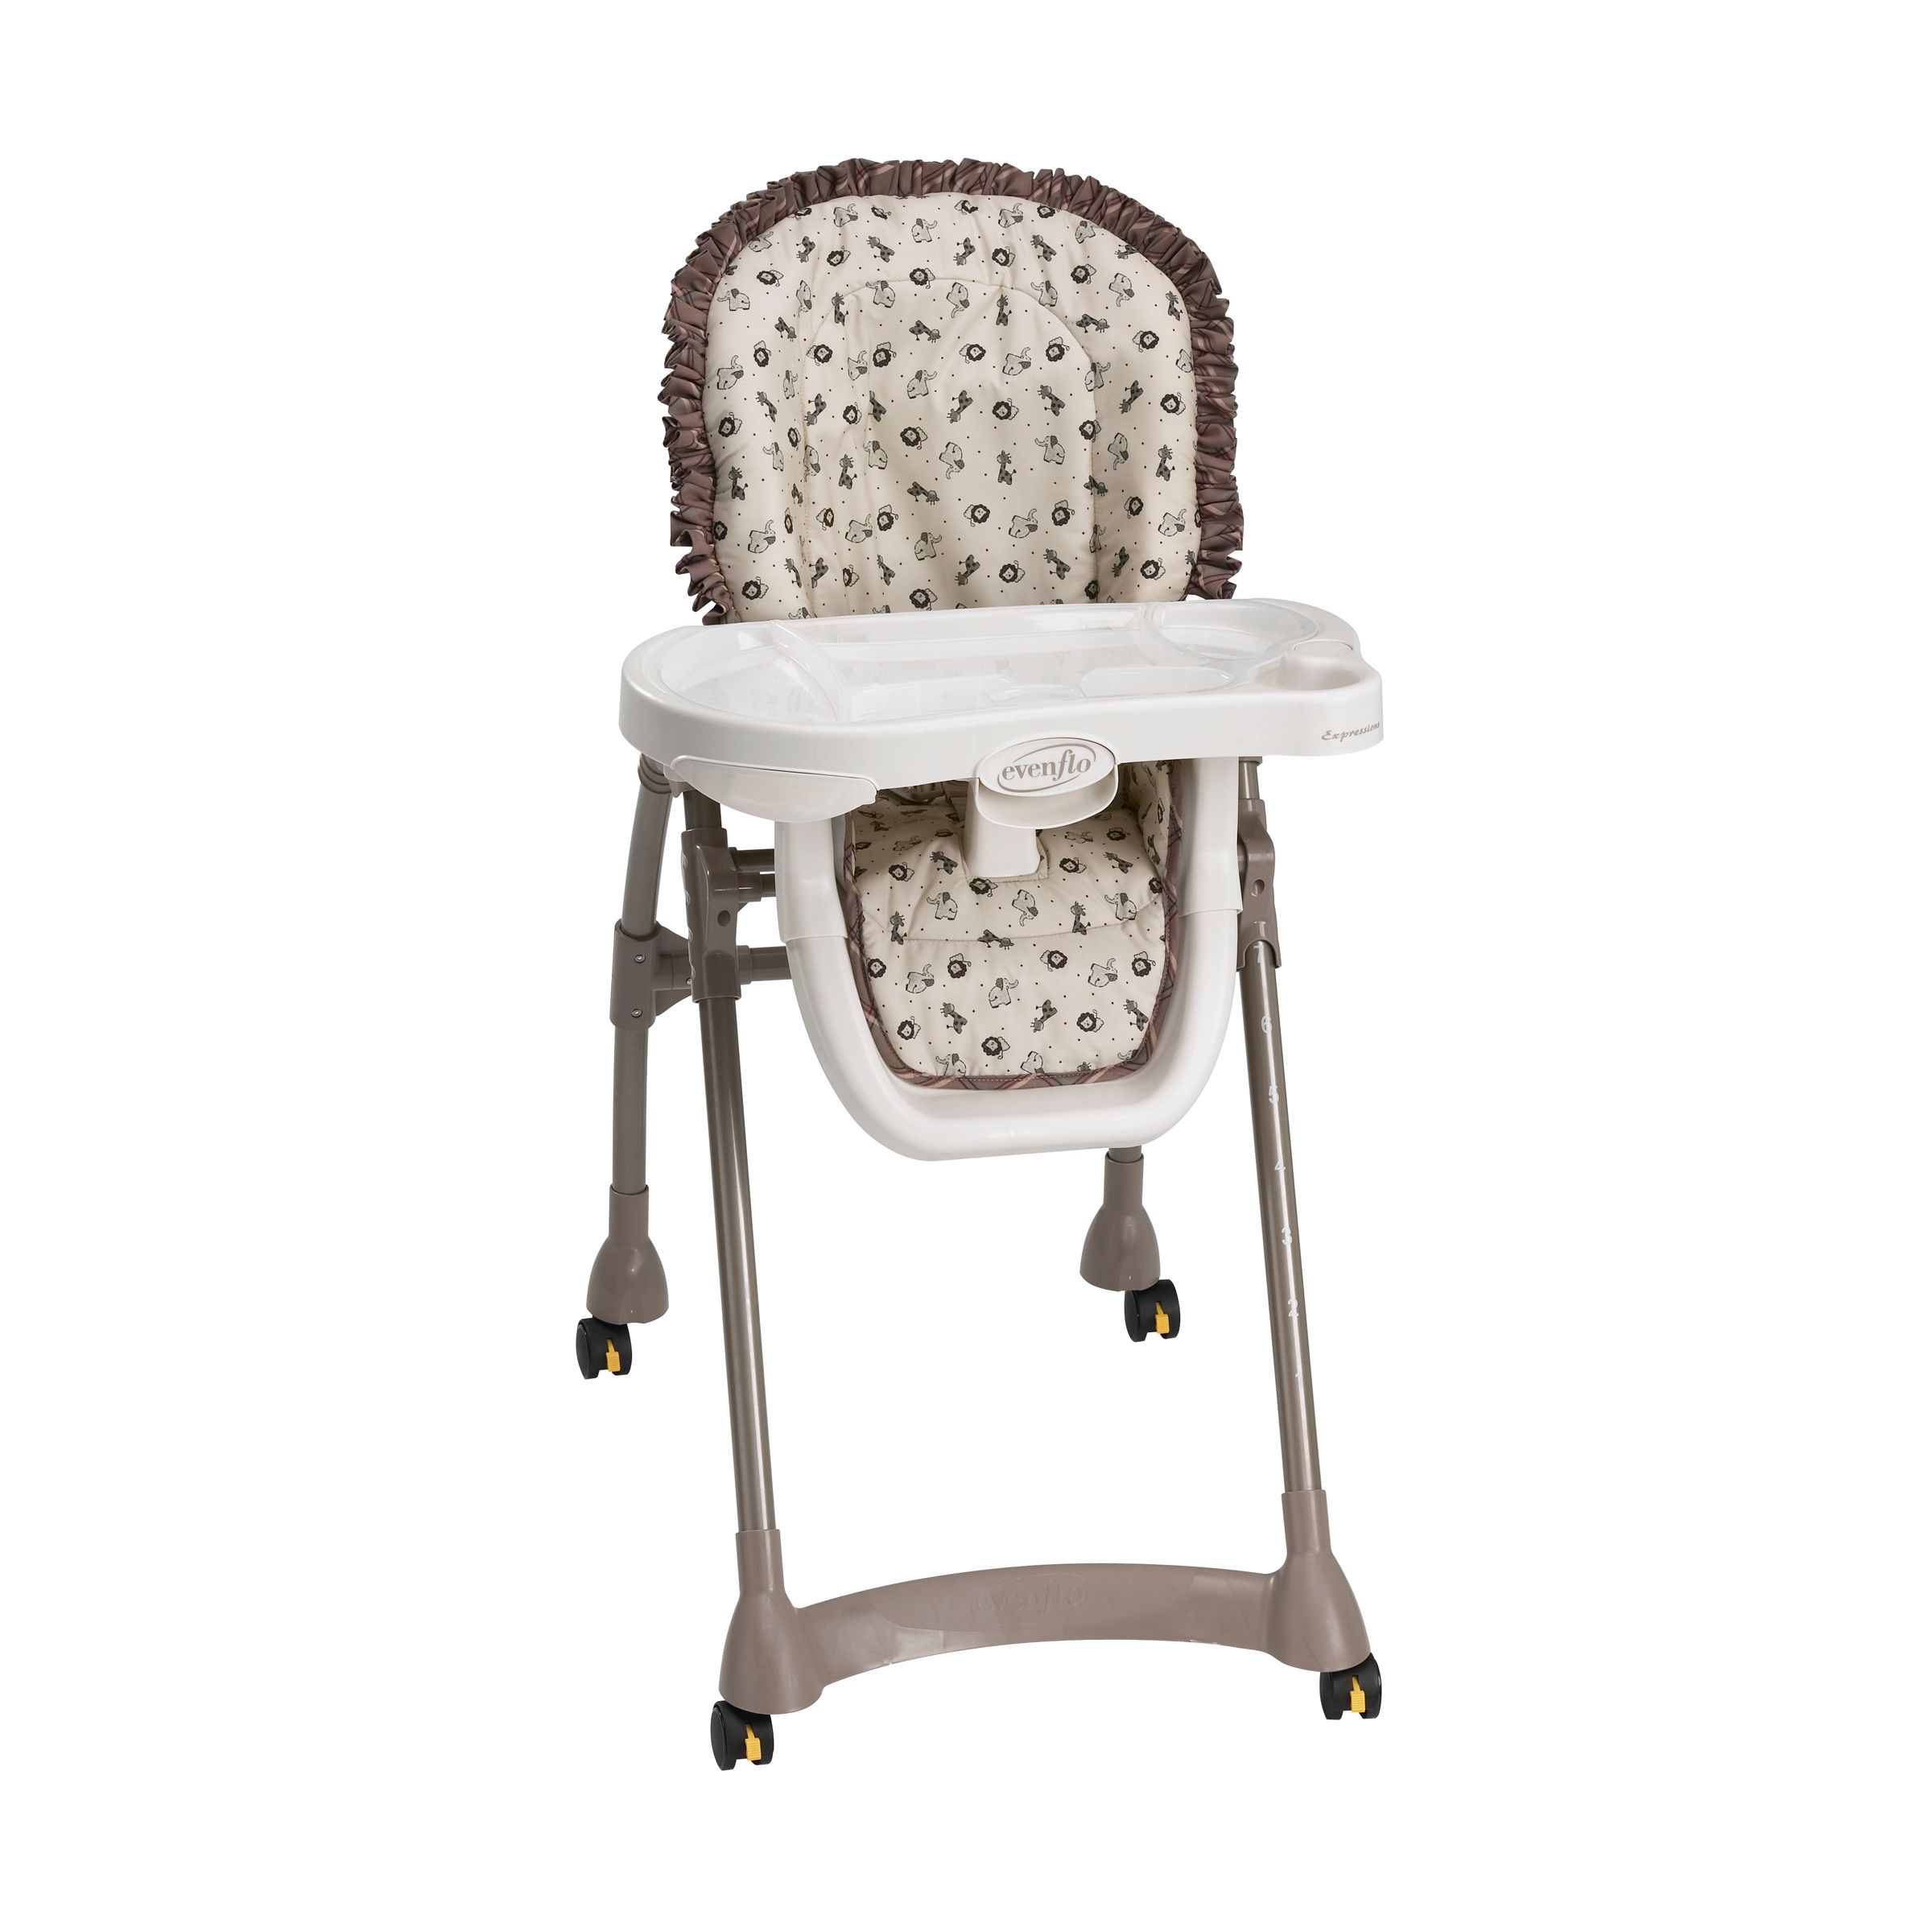 Evenflo Compact Fold High Chair Evenflo Expressions High Chair Safari Ii